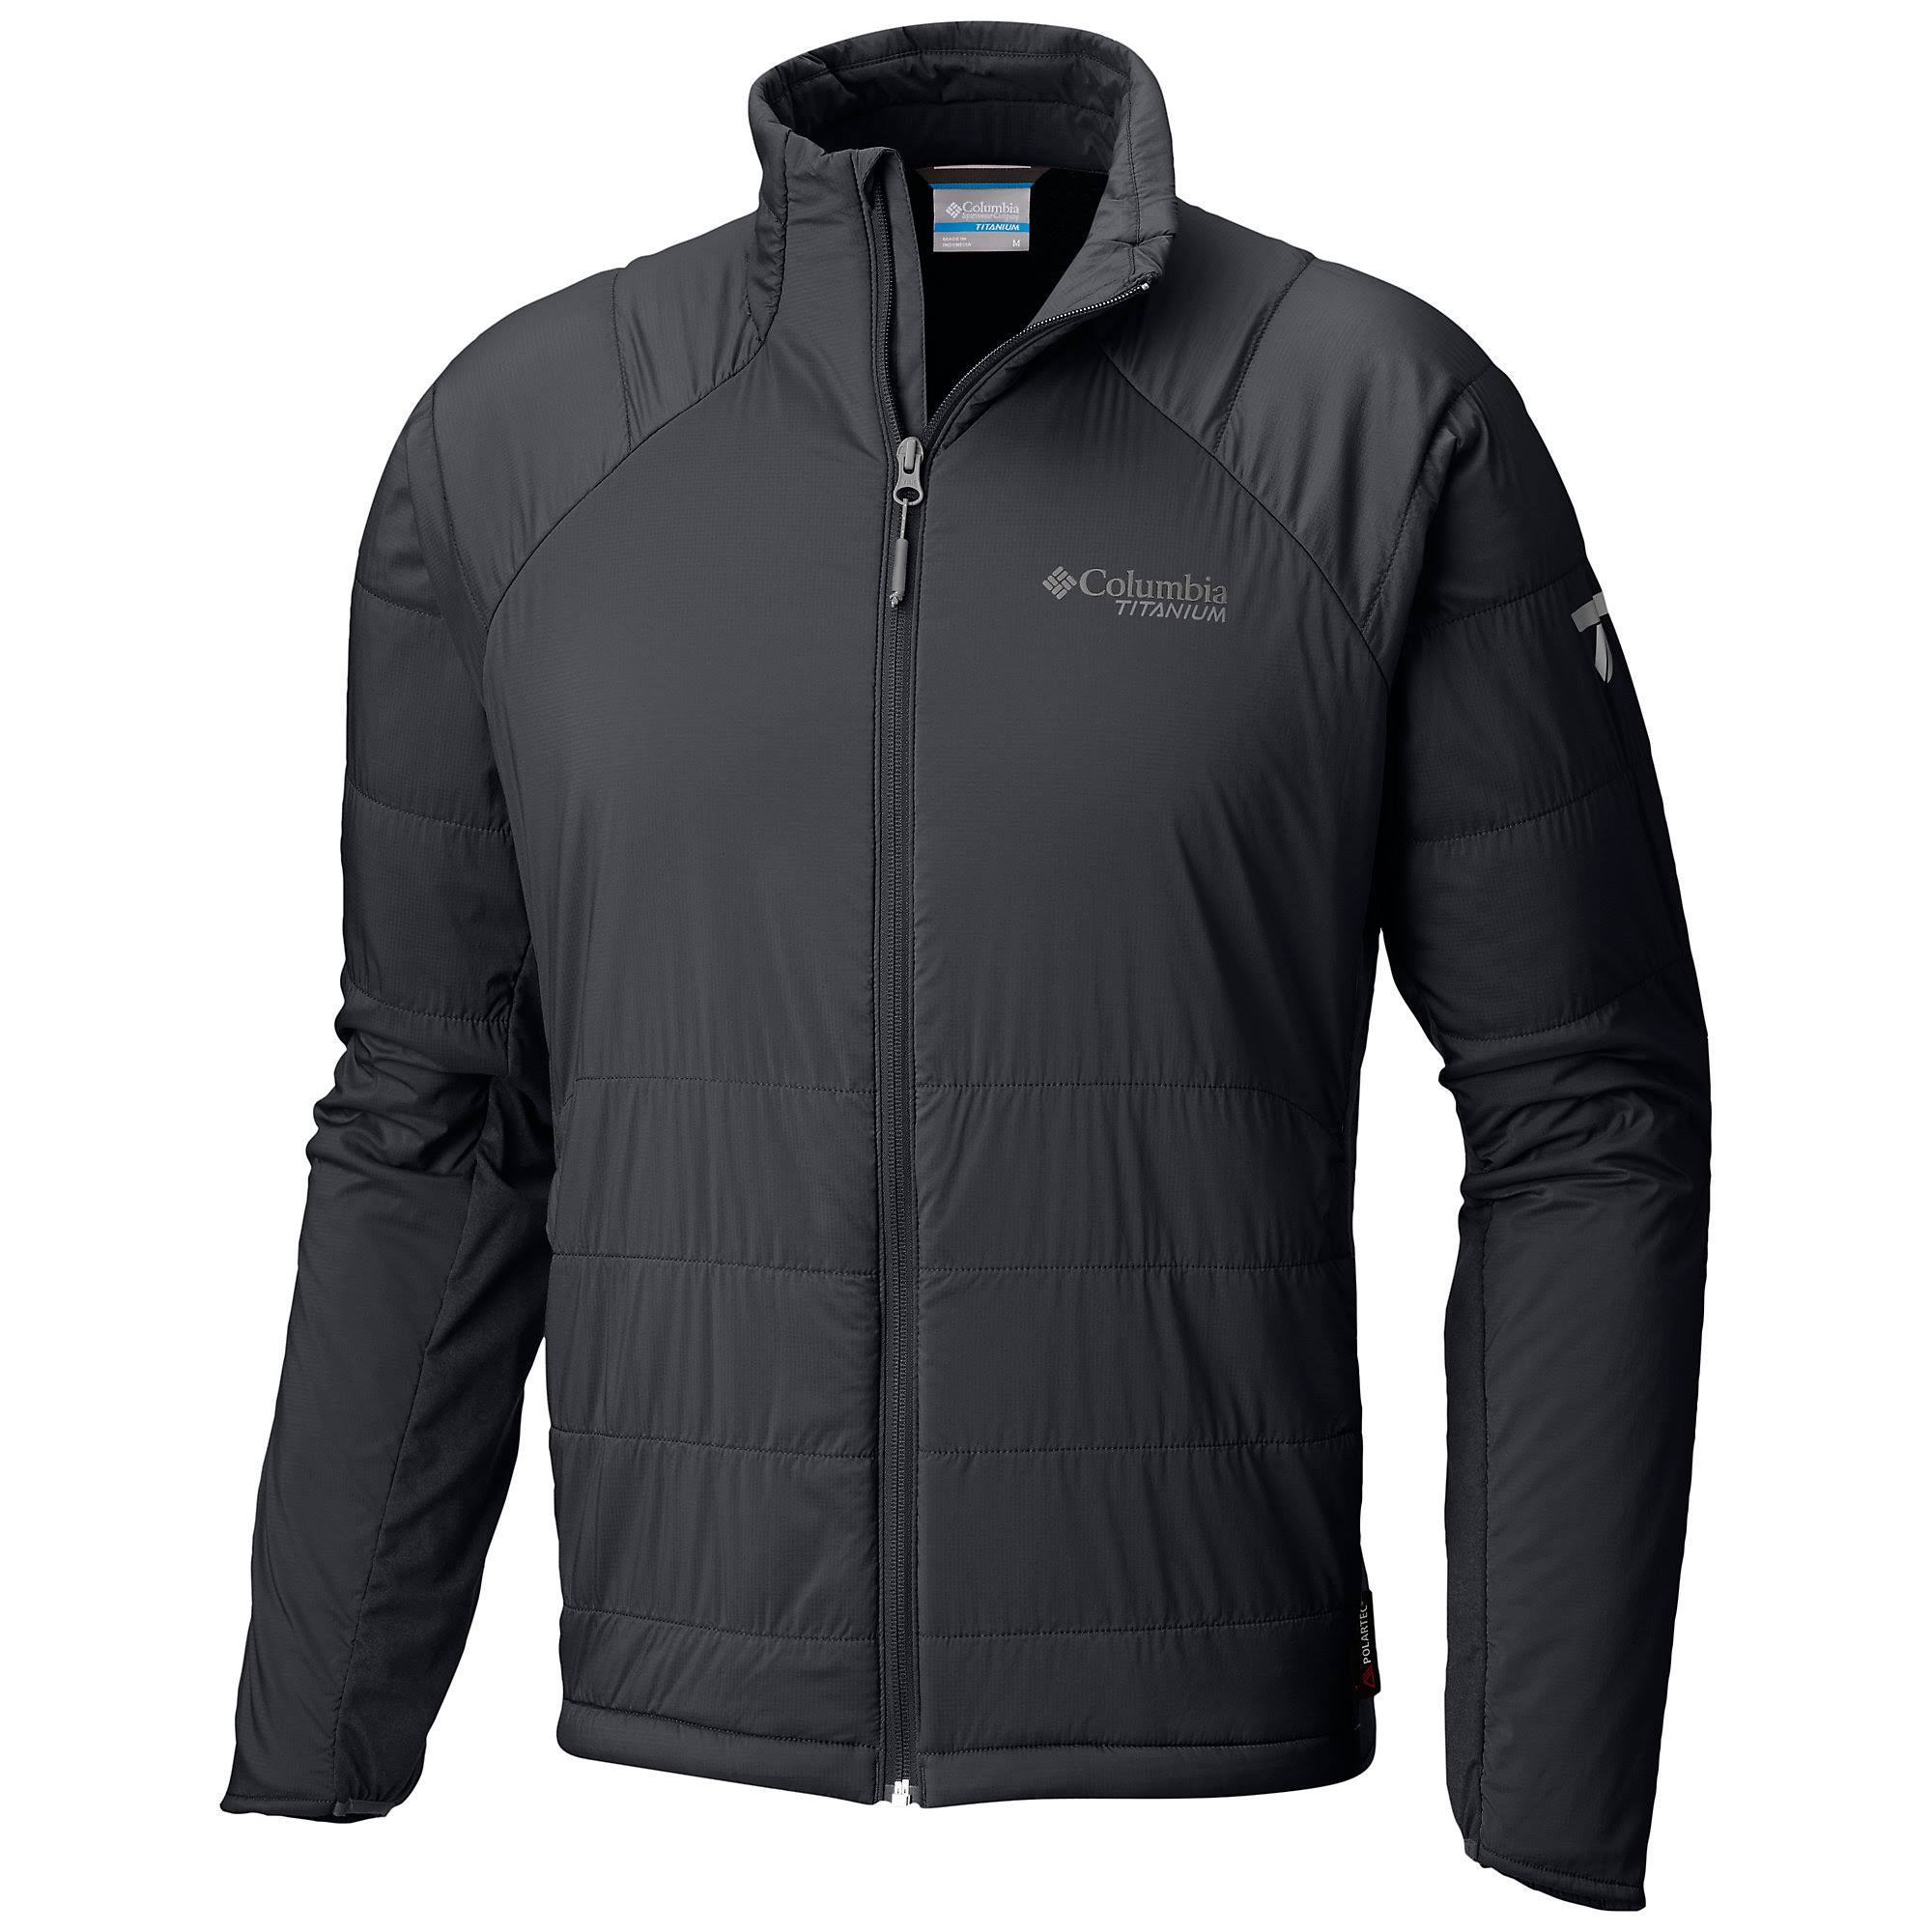 M Schwarz Alpine Columbia Jacket Traverse vHan8